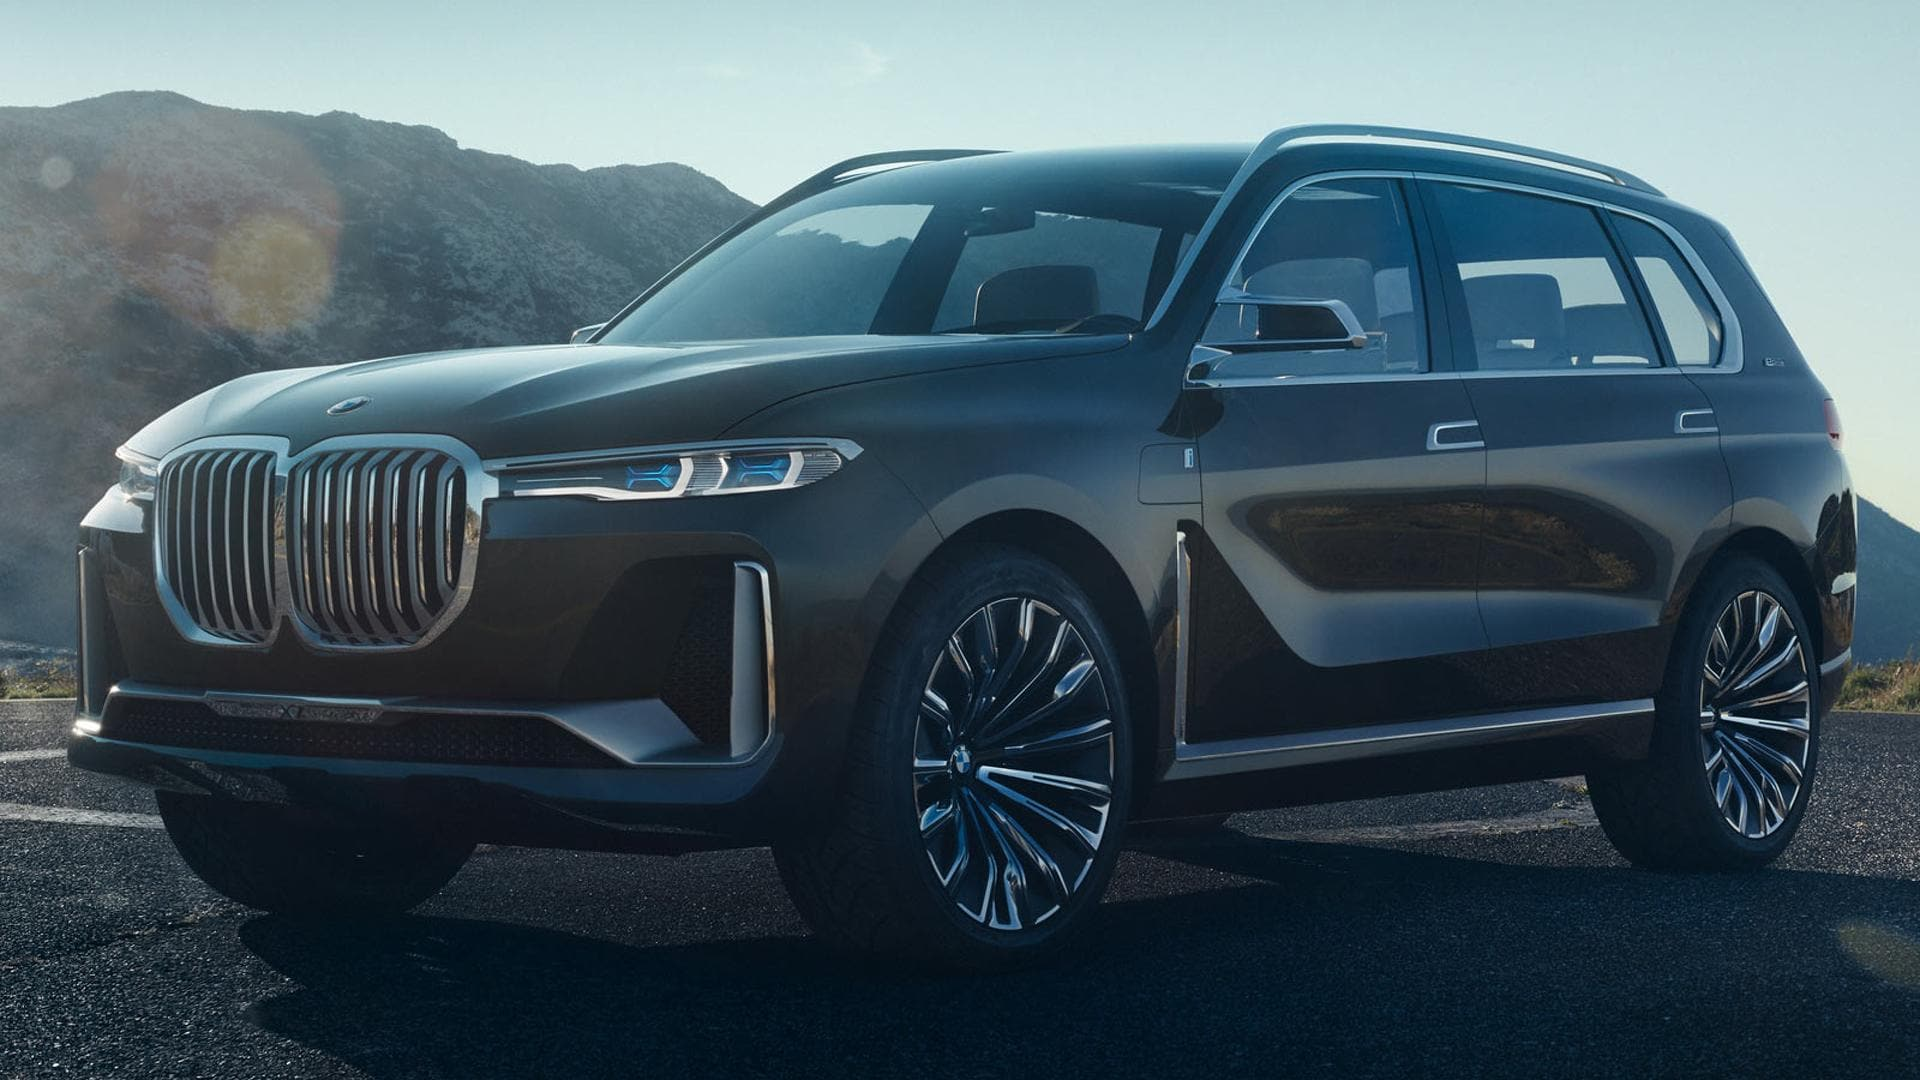 Bmw X7 Crossover Concept Teased In Tweet Ndtv Carandbike